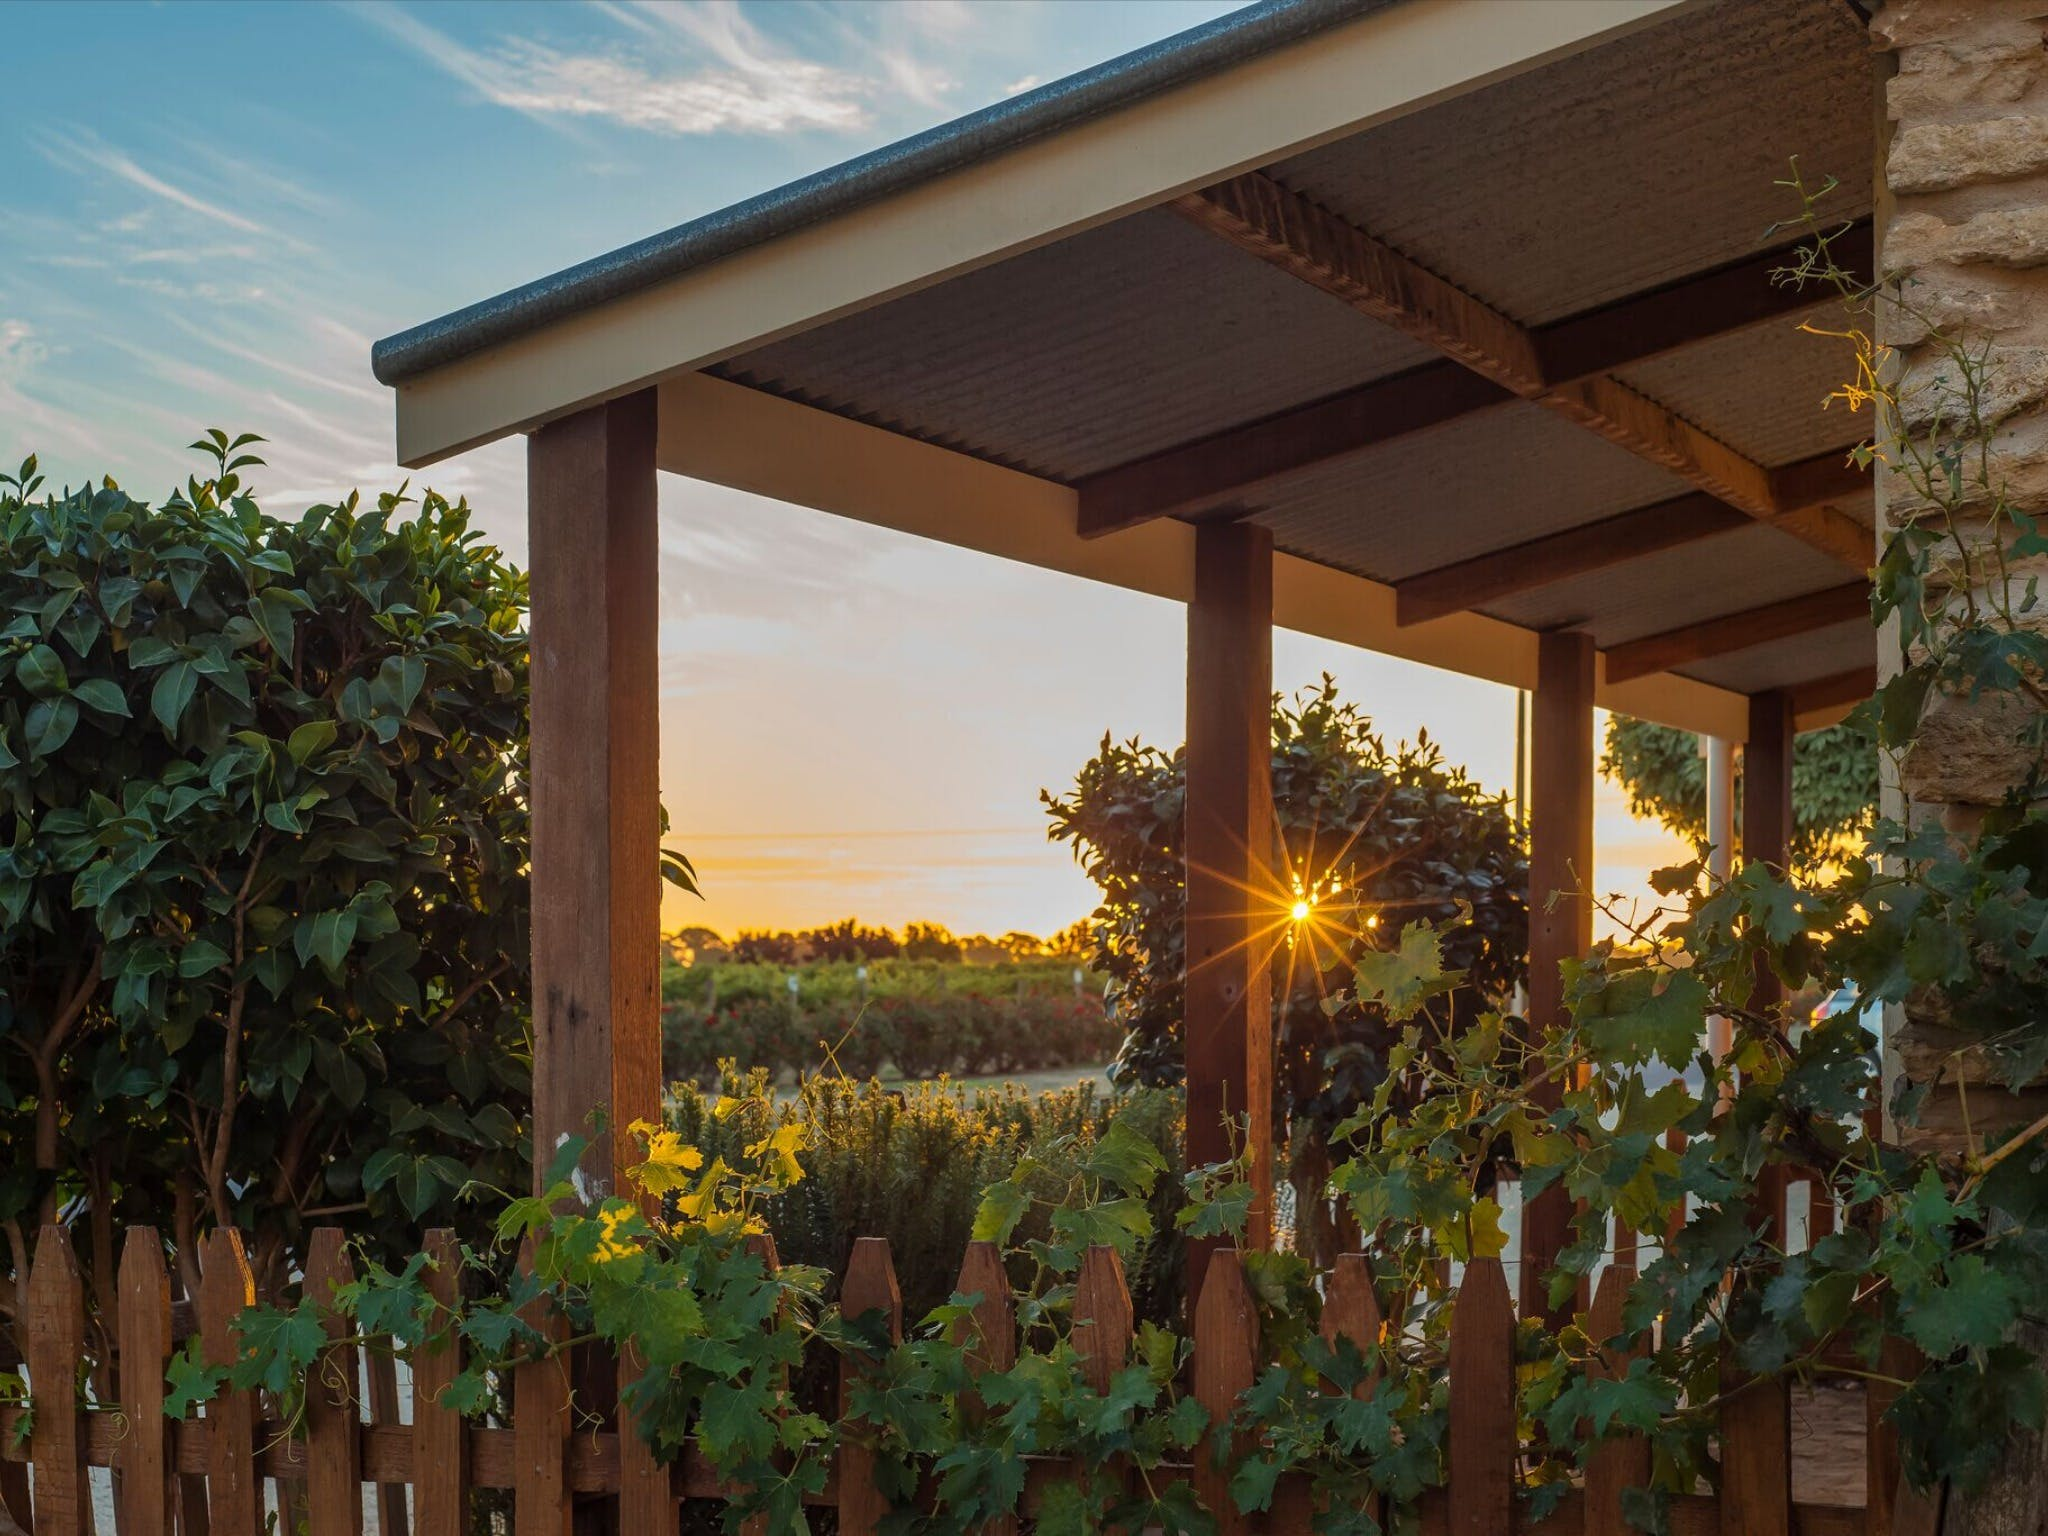 Caf in the Vines - Pubs and Clubs